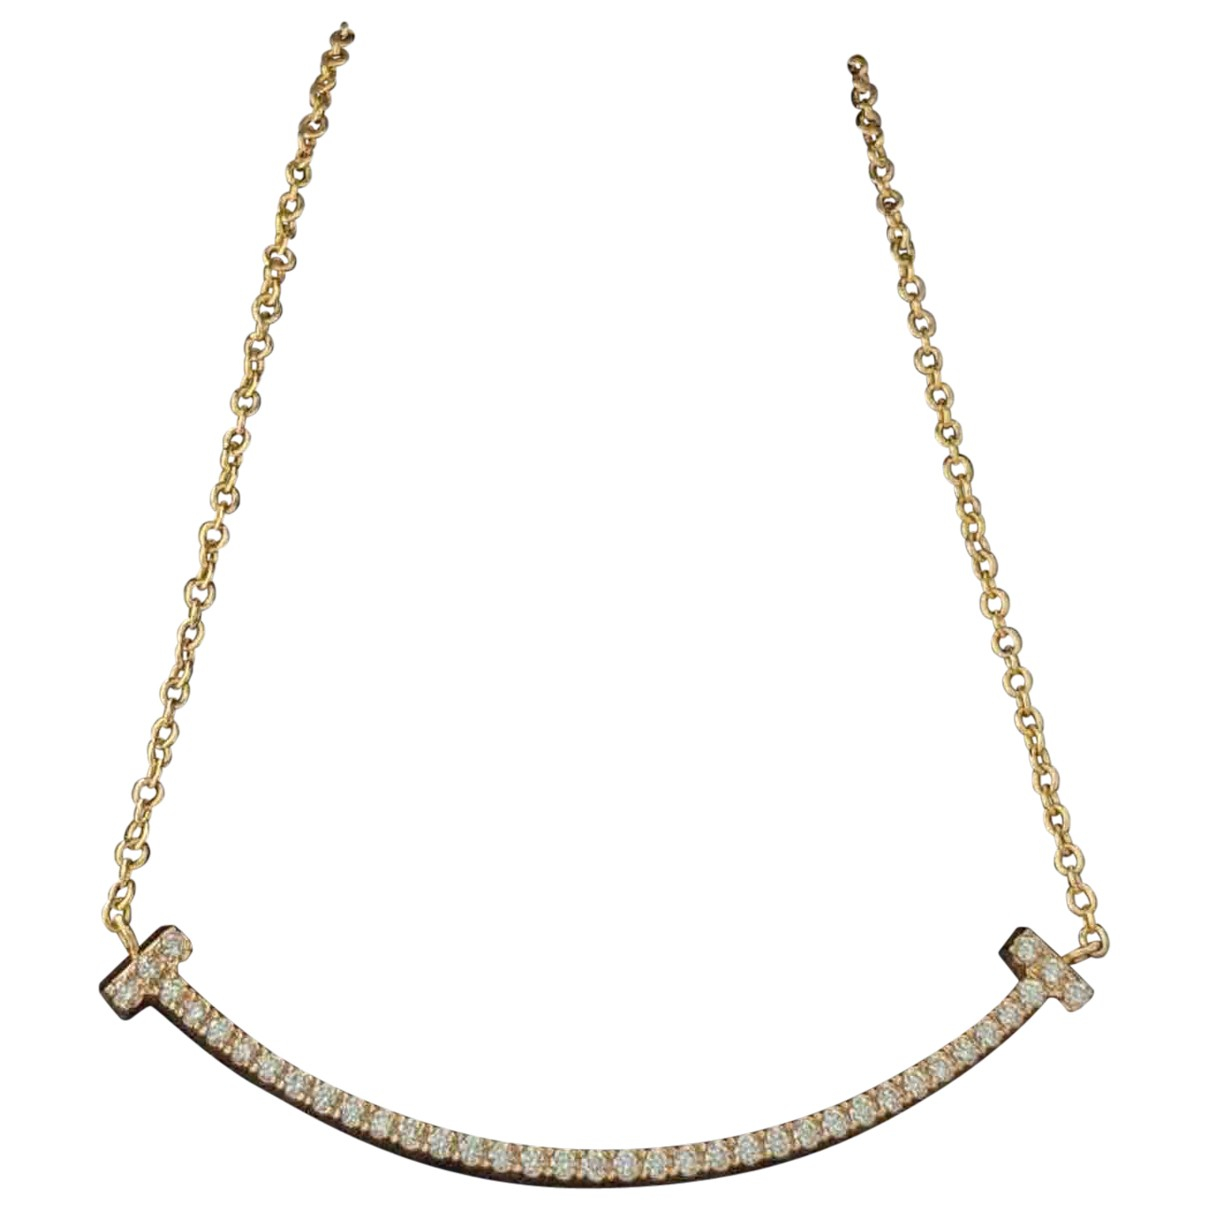 Tiffany & Co Tiffany T Kette in Rosegold